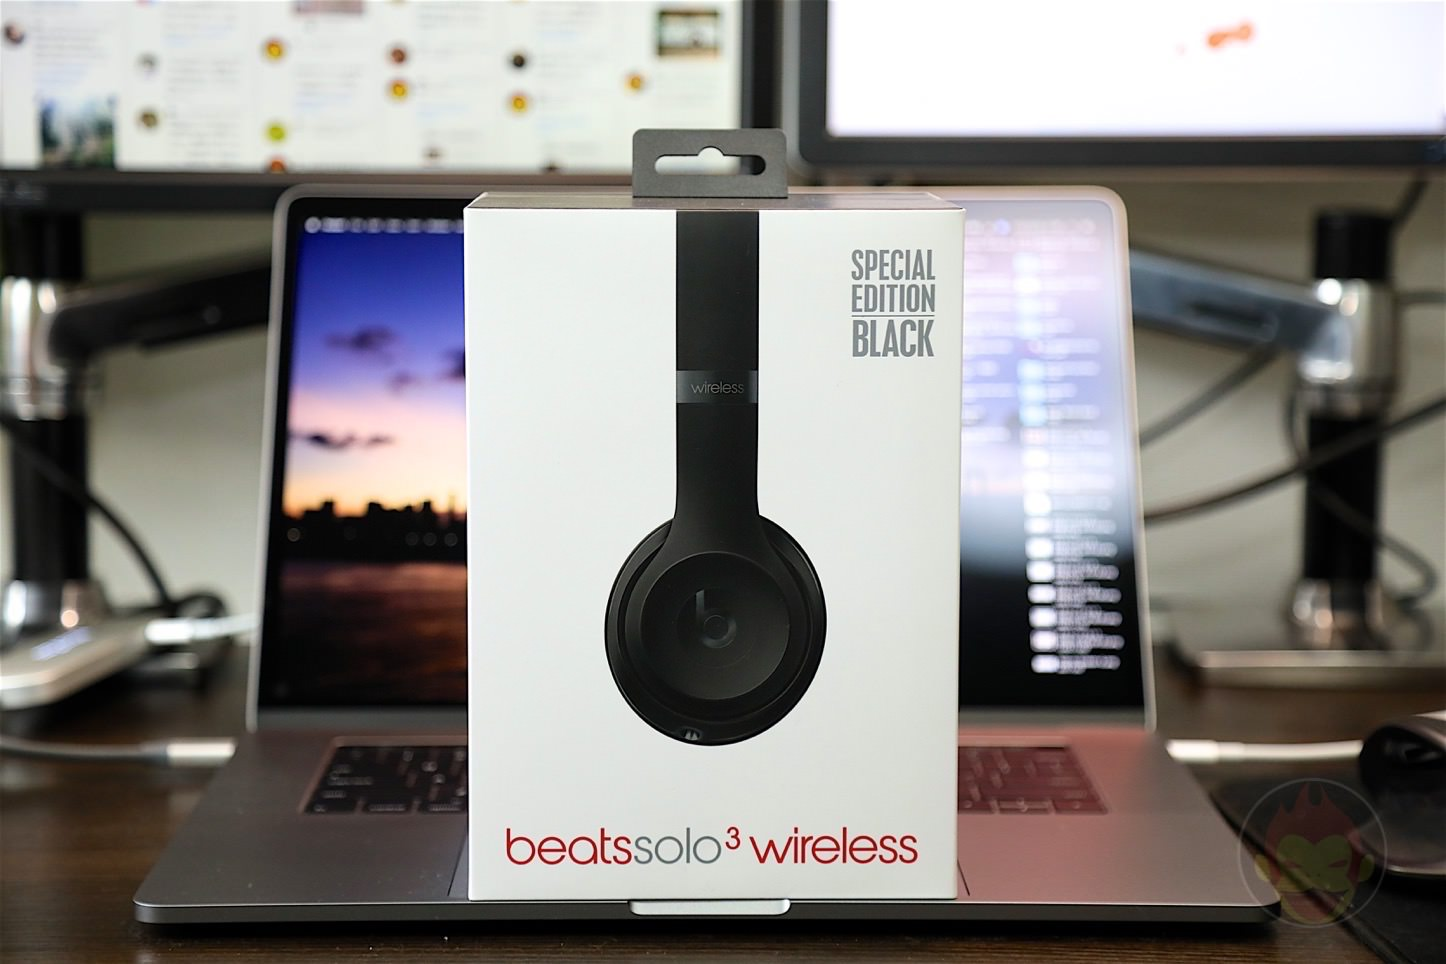 Beats-Solo3-Wireless-Headphones-29.jpg